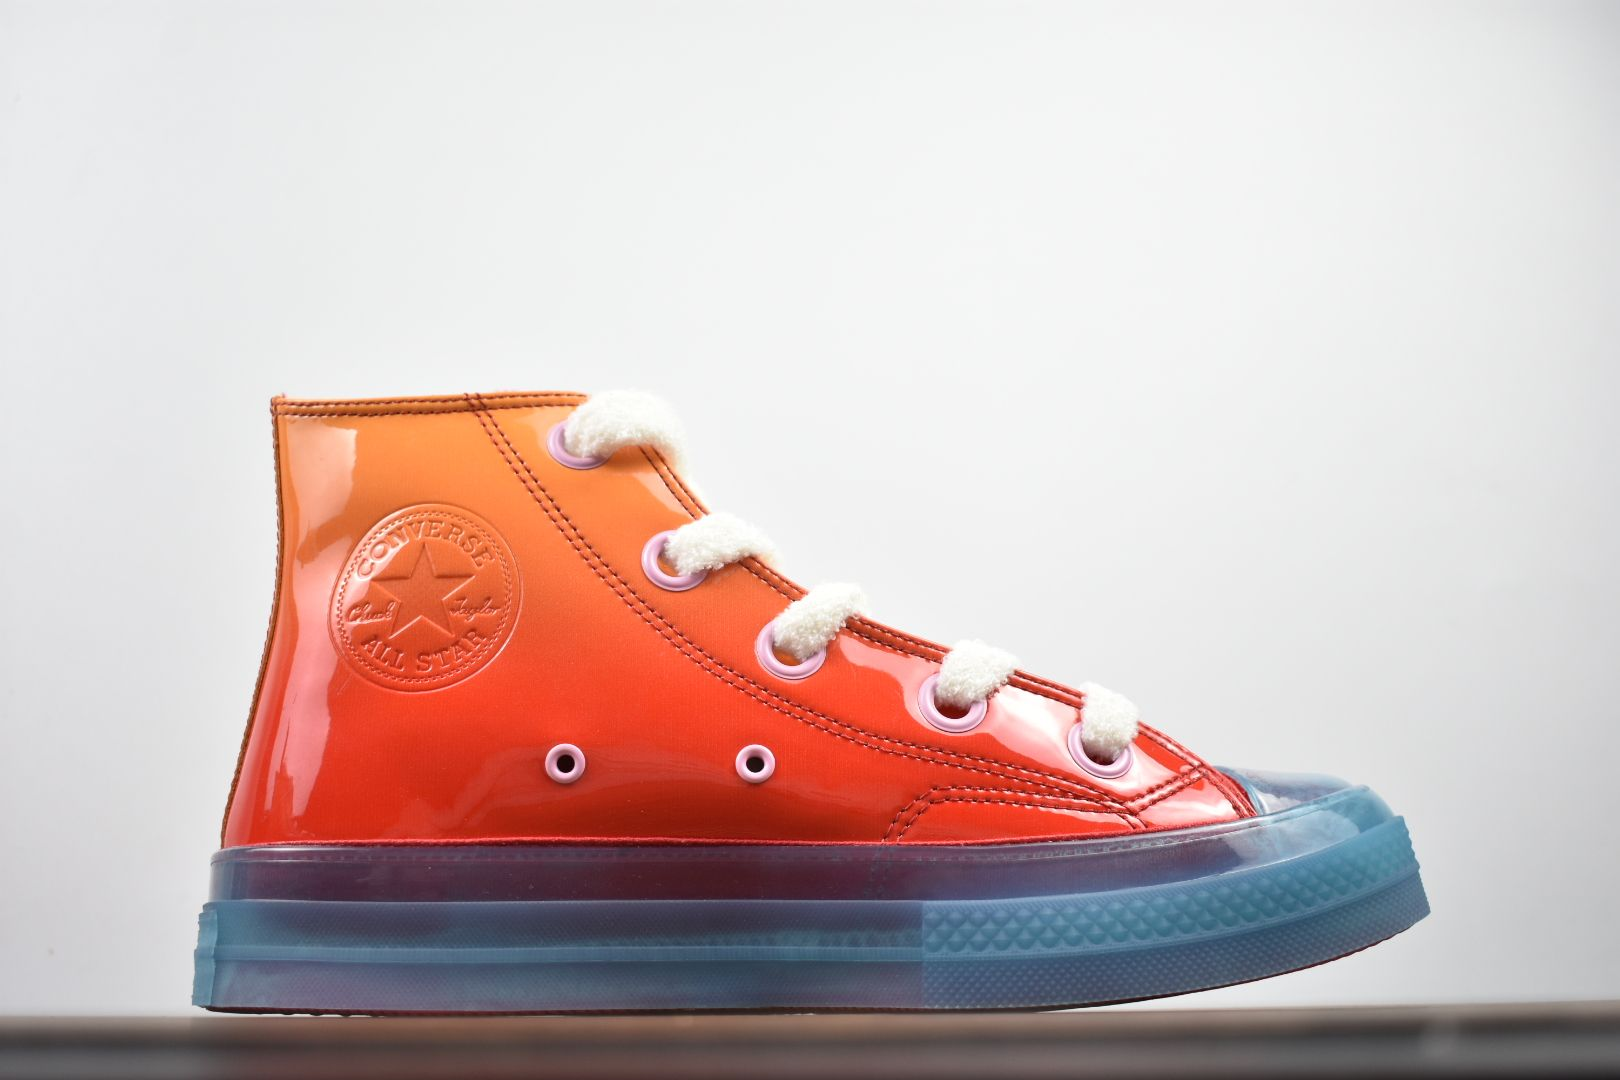 J.W. Anderson x Chuck 70 High Top Toy-7